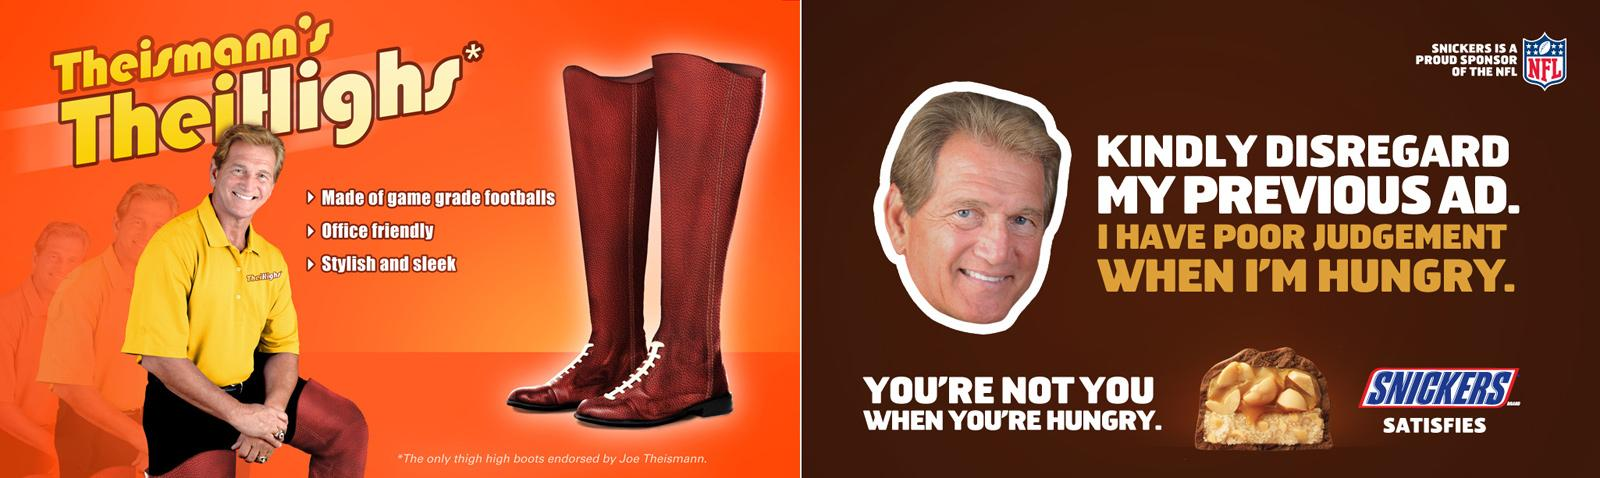 Snickers Print Ad -  Theismann's TheiHighs